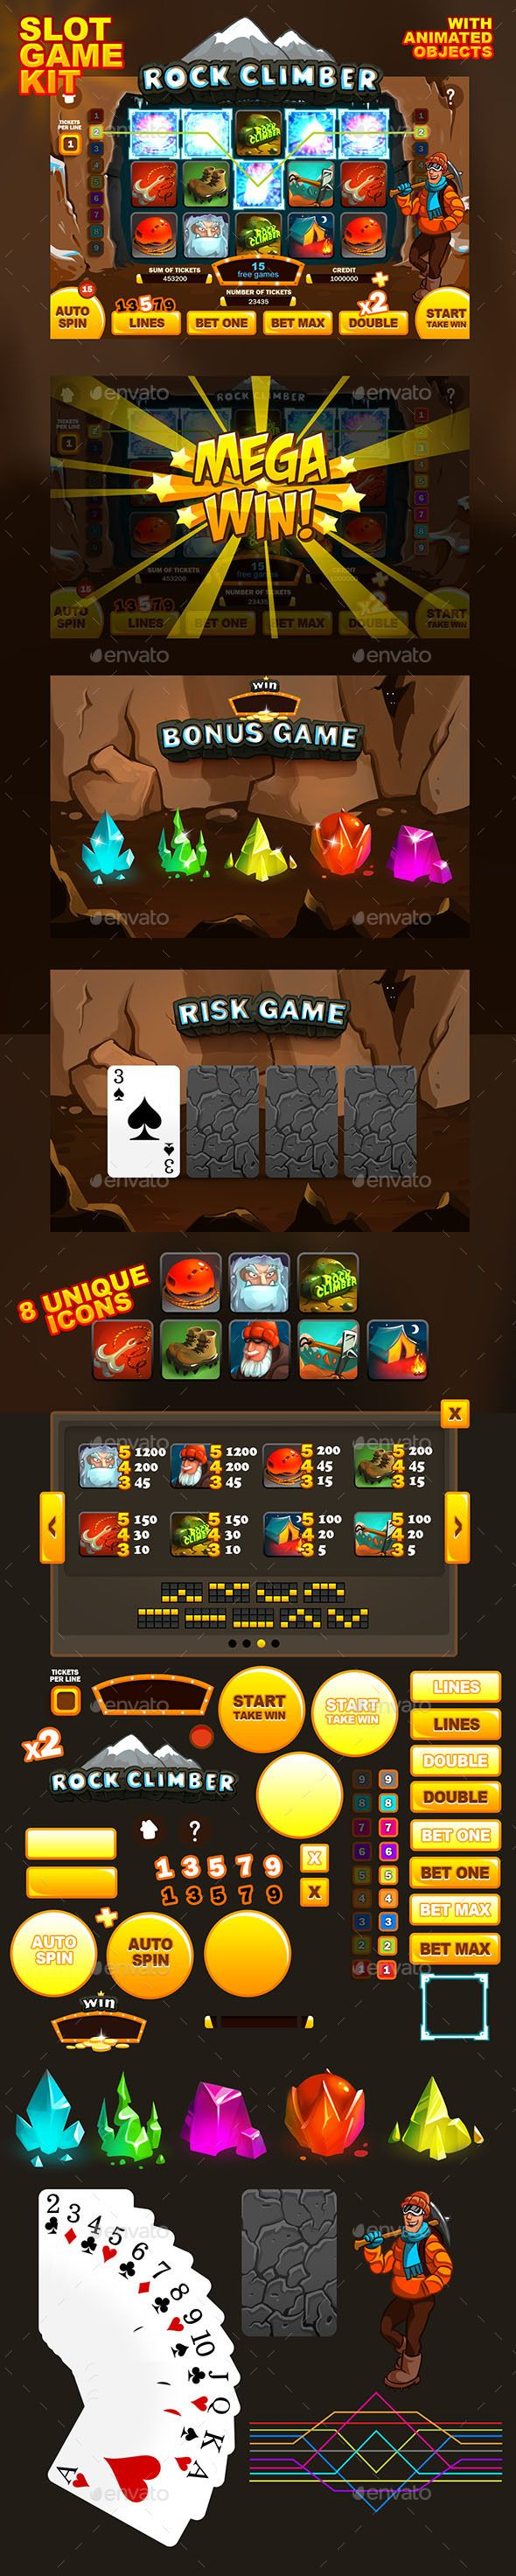 Rock Climber slot game kit — Photoshop PSD #game art #slot • Download ➝ https://graphicriver.net/item/rock-climber-slot-game-kit/10755235?ref=pxcr